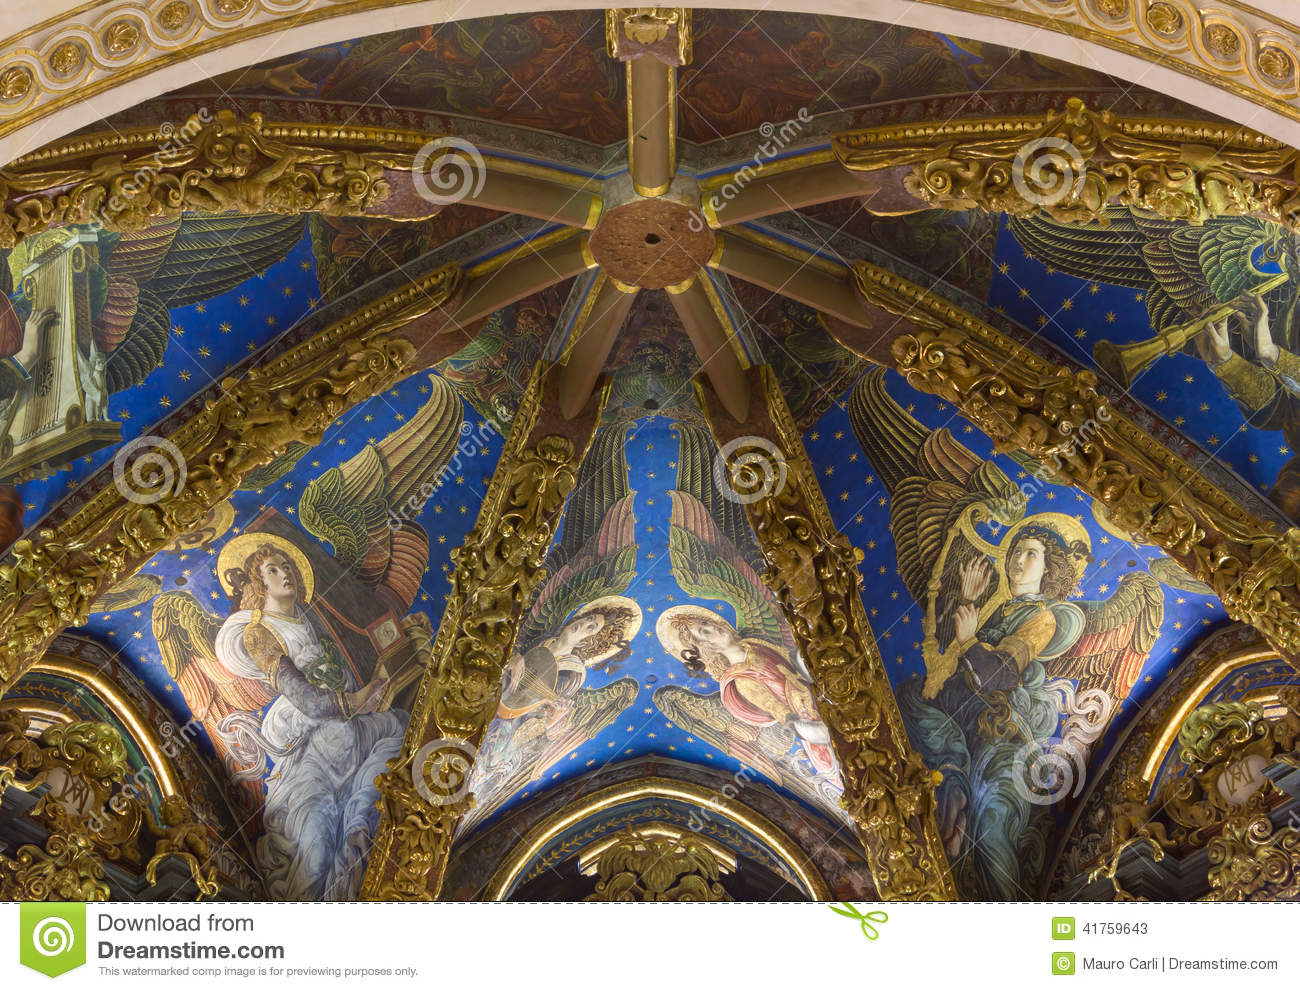 an analysis of the renaissance in spain See the renaissance architecture of spain, including el escorial & creators like berruguete and el greco, on the official website of spanish culture.